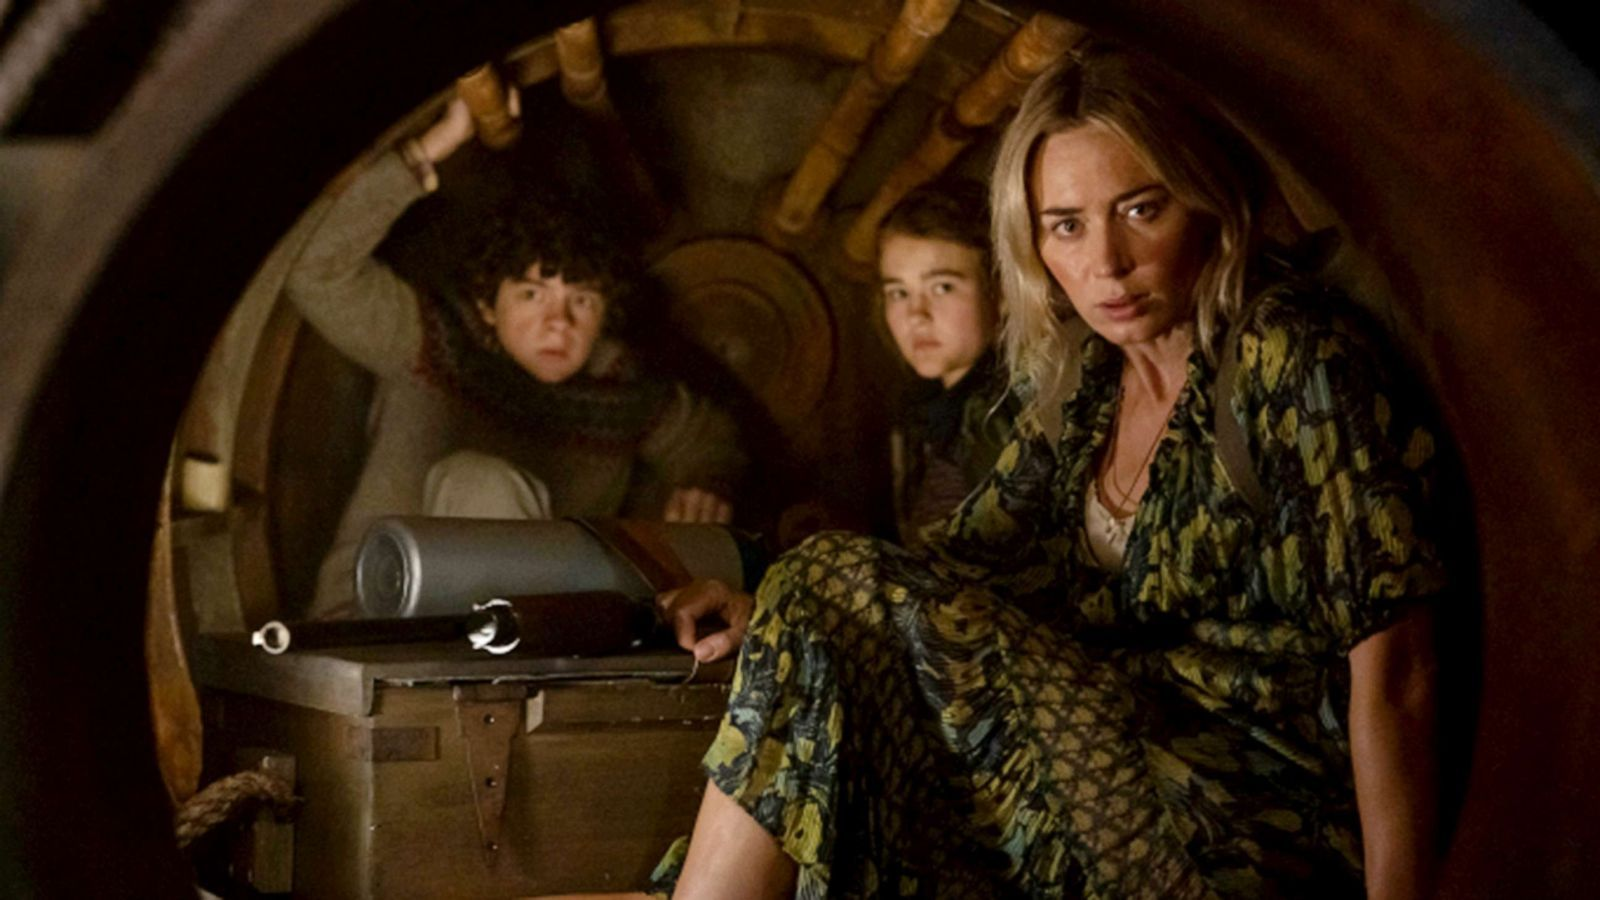 A Quiet Place Part II Off to Loud Friday Box Office Start